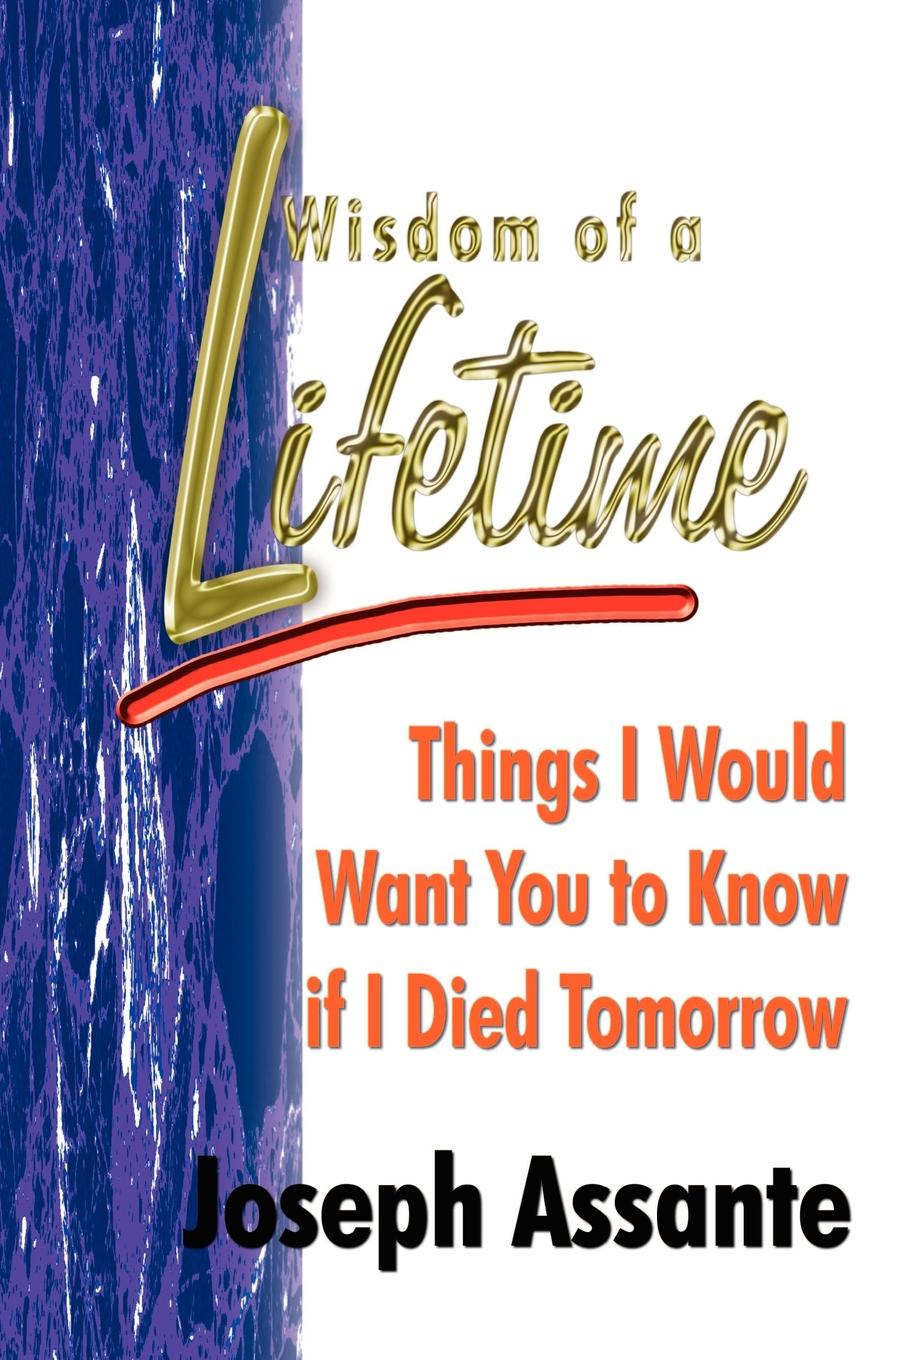 Joseph Assante Wisdom of a Lifetime. Things I Would Want You to Know if I Died Tomorrow if tomorrow comes